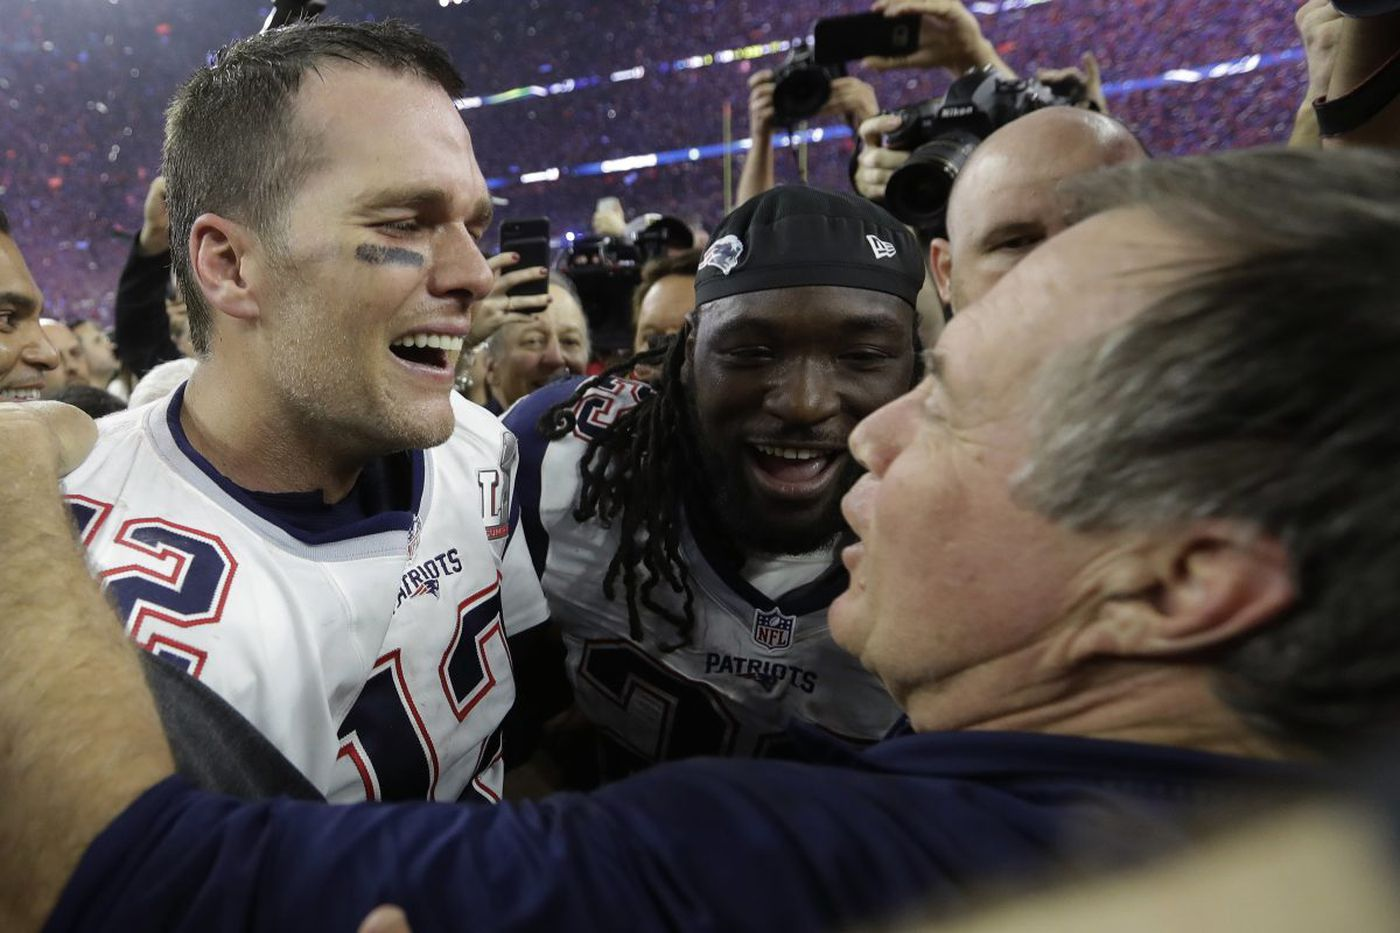 Patriots' scandals will haunt them against the Eagles in Super Bowl | Marcus Hayes